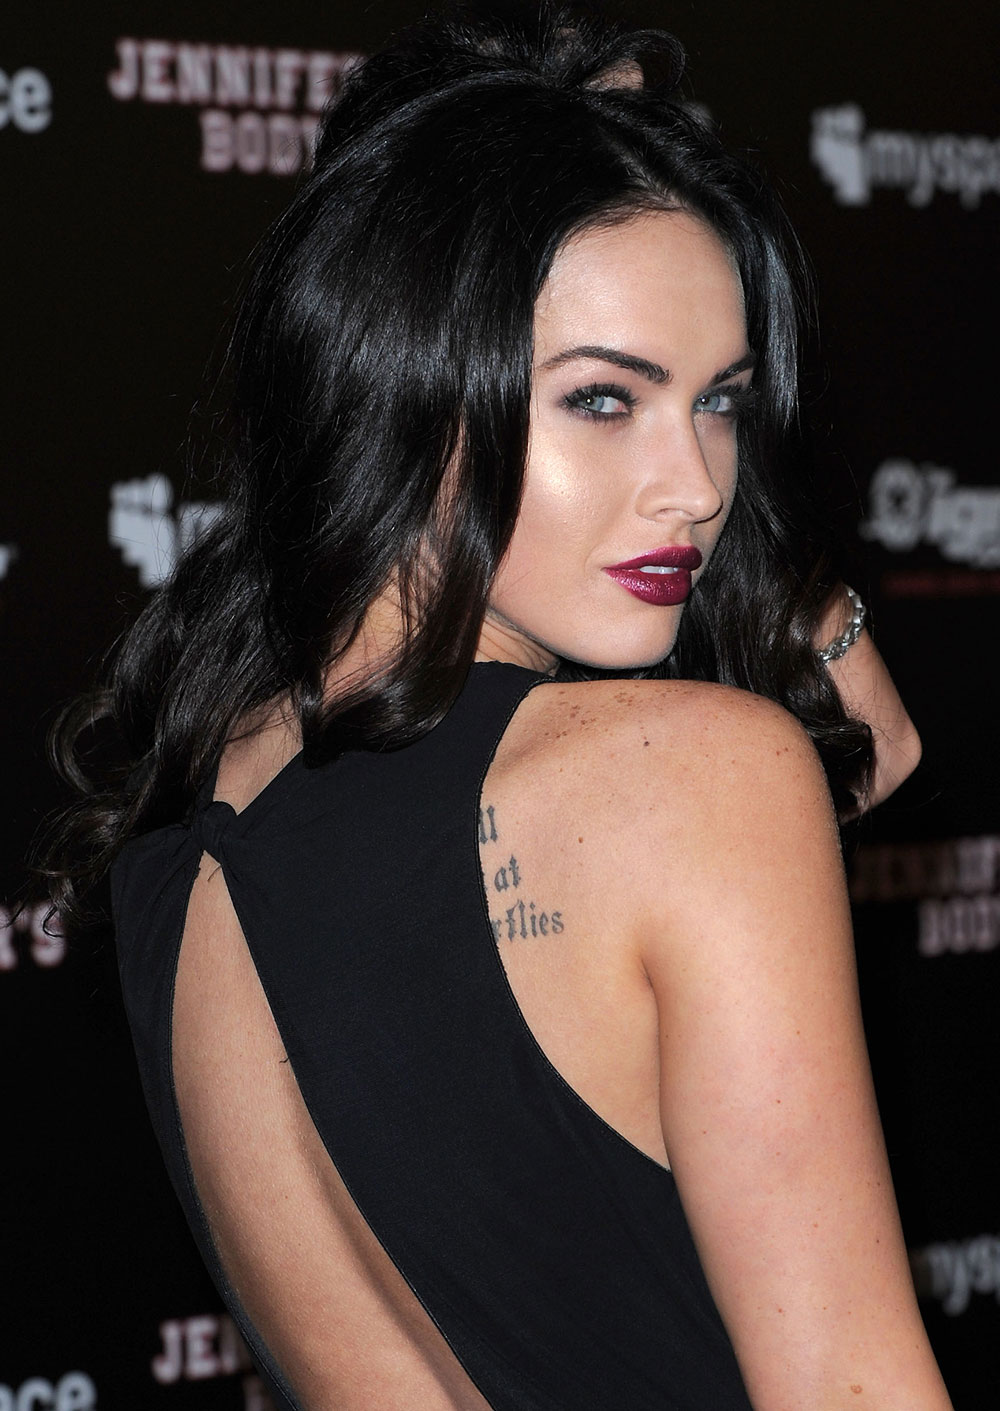 megan fox makeup. Celebrity Makeup: Megan Fox at